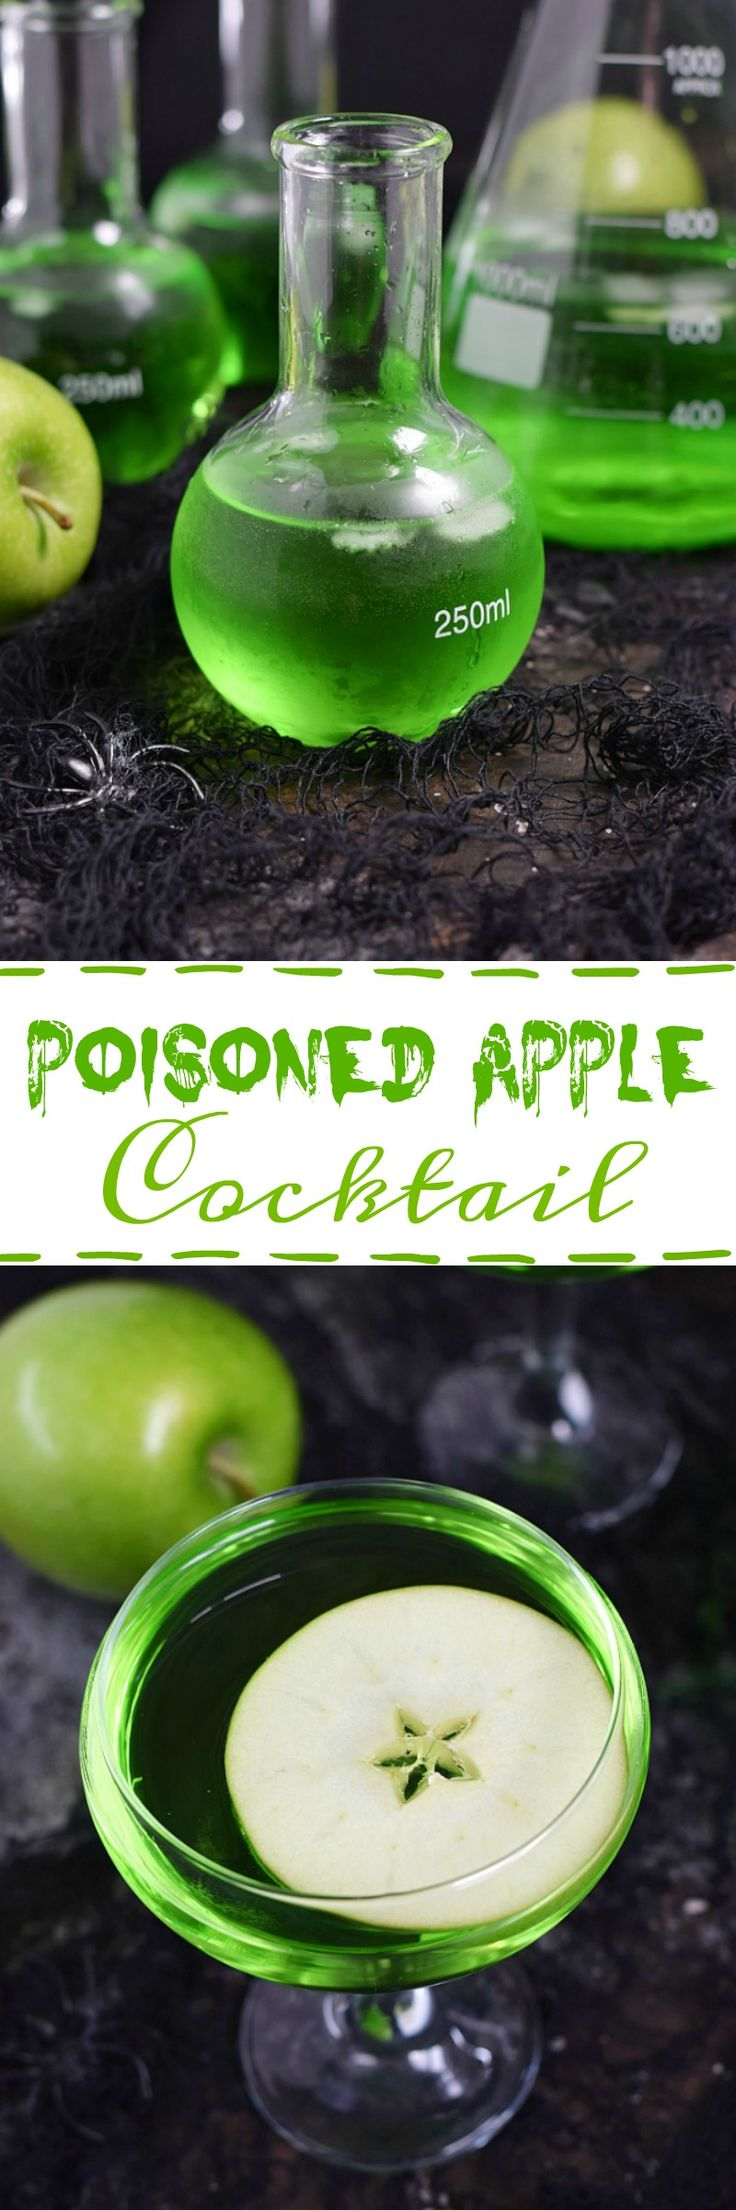 Channel your inner witch this Halloween and serve a delicious Poisoned Apple Cocktail to your guests | cookingwithcurls.com #halloween #cocktail #apple